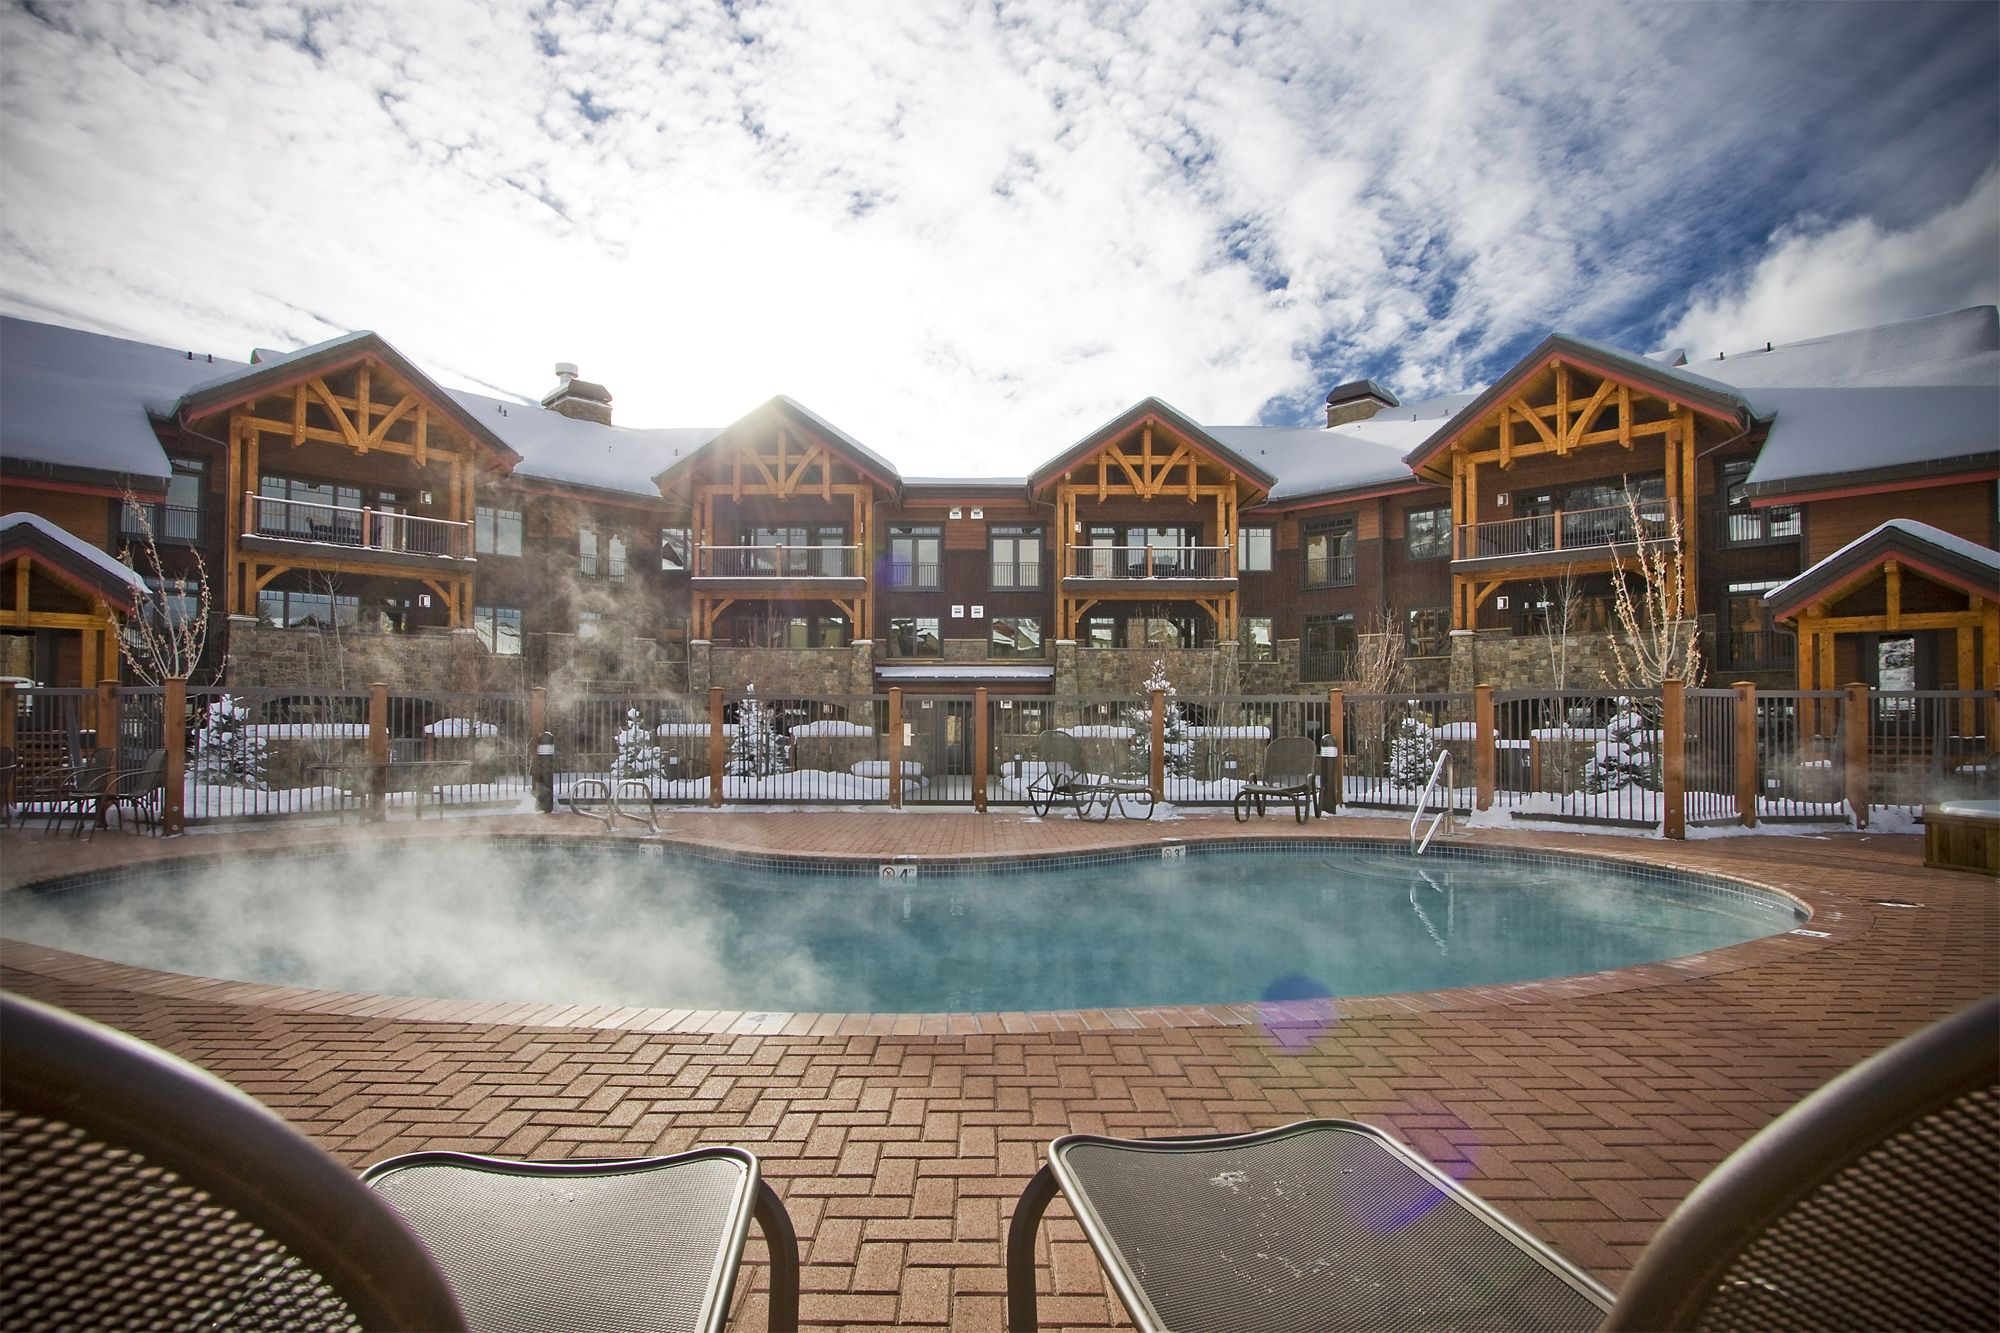 Where To Stay When In Steamboat Springs Steamboat Springs Lodging Options Abound Colorado Skiing Steamboat Springs Colorado Summer Steamboat Springs Resorts